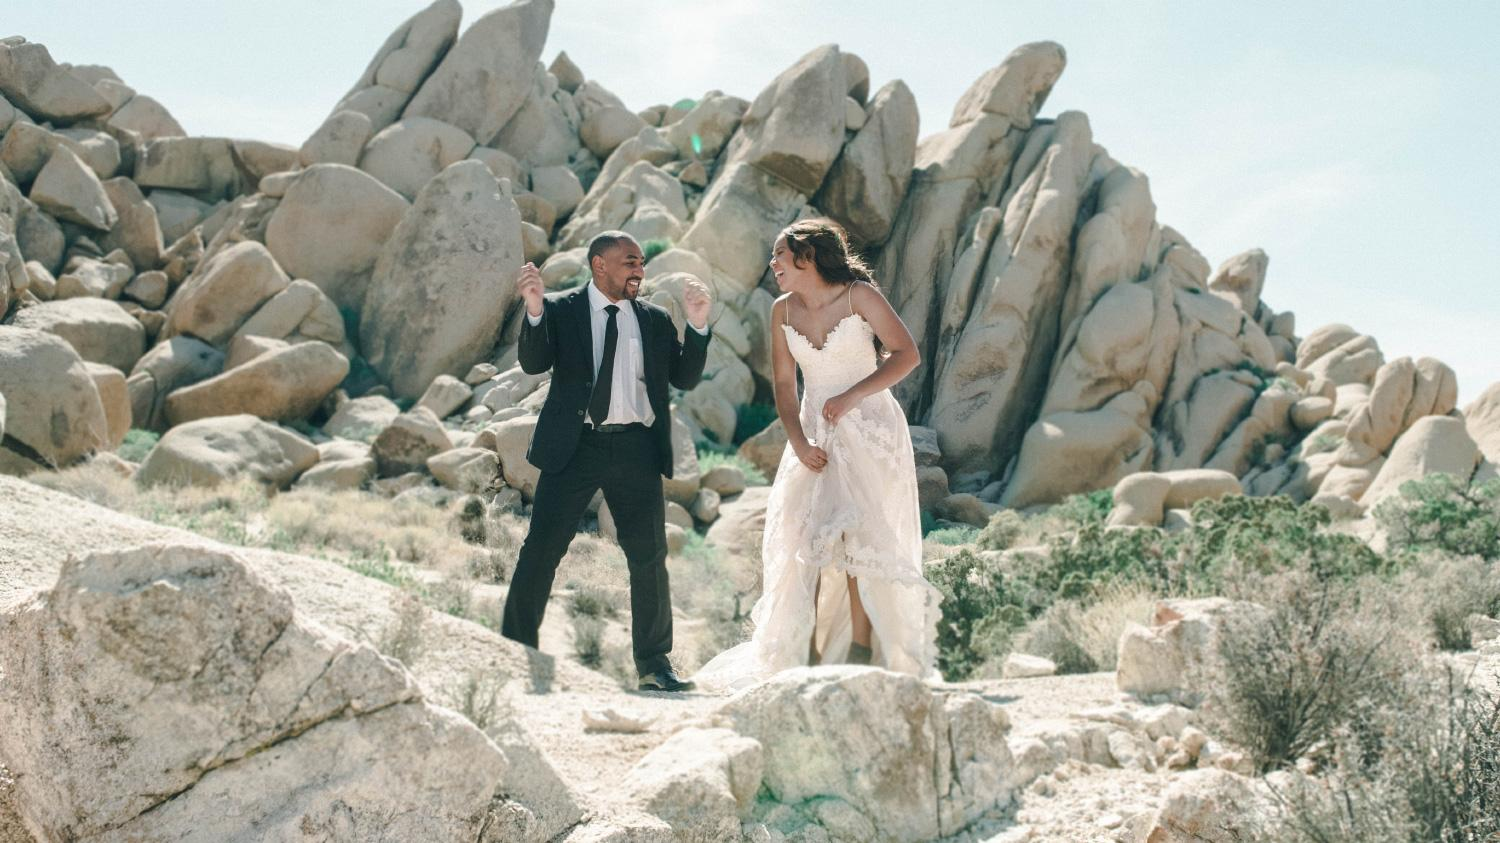 Tying the Knot [5 Wedding Planning Tips] Thumbnail